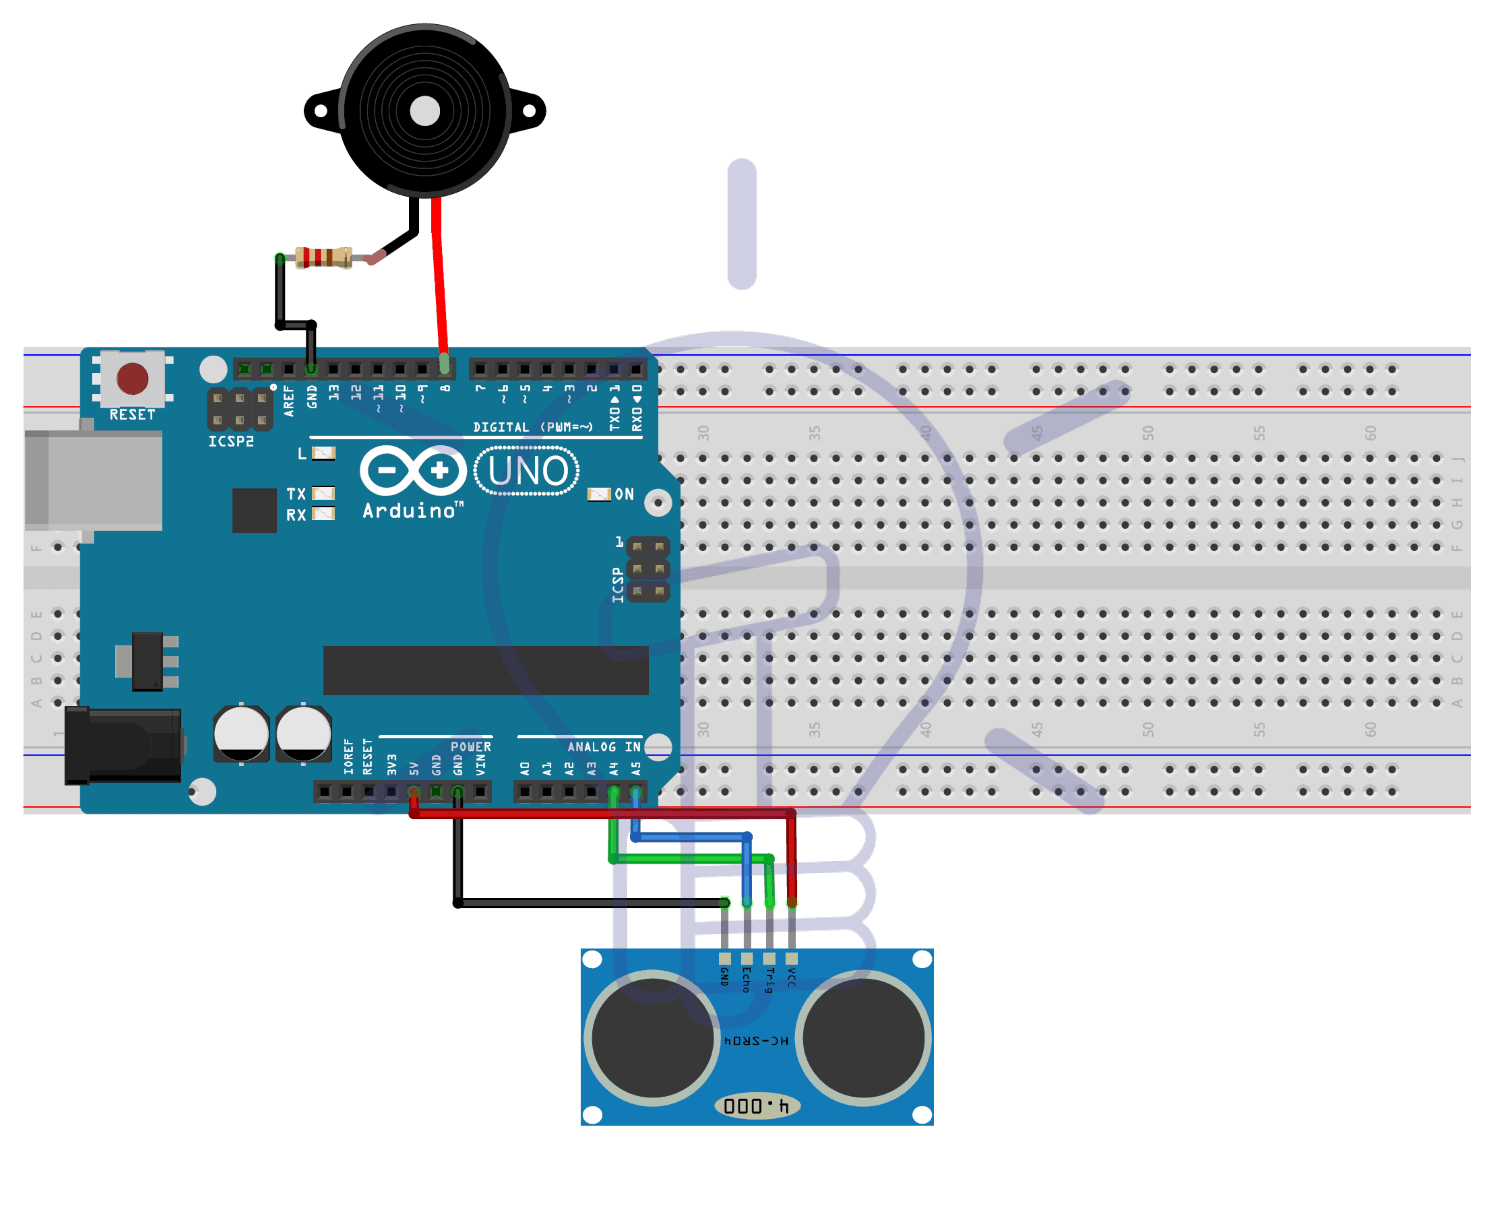 Circuit Diagram for Automatic Doorbell with object detection